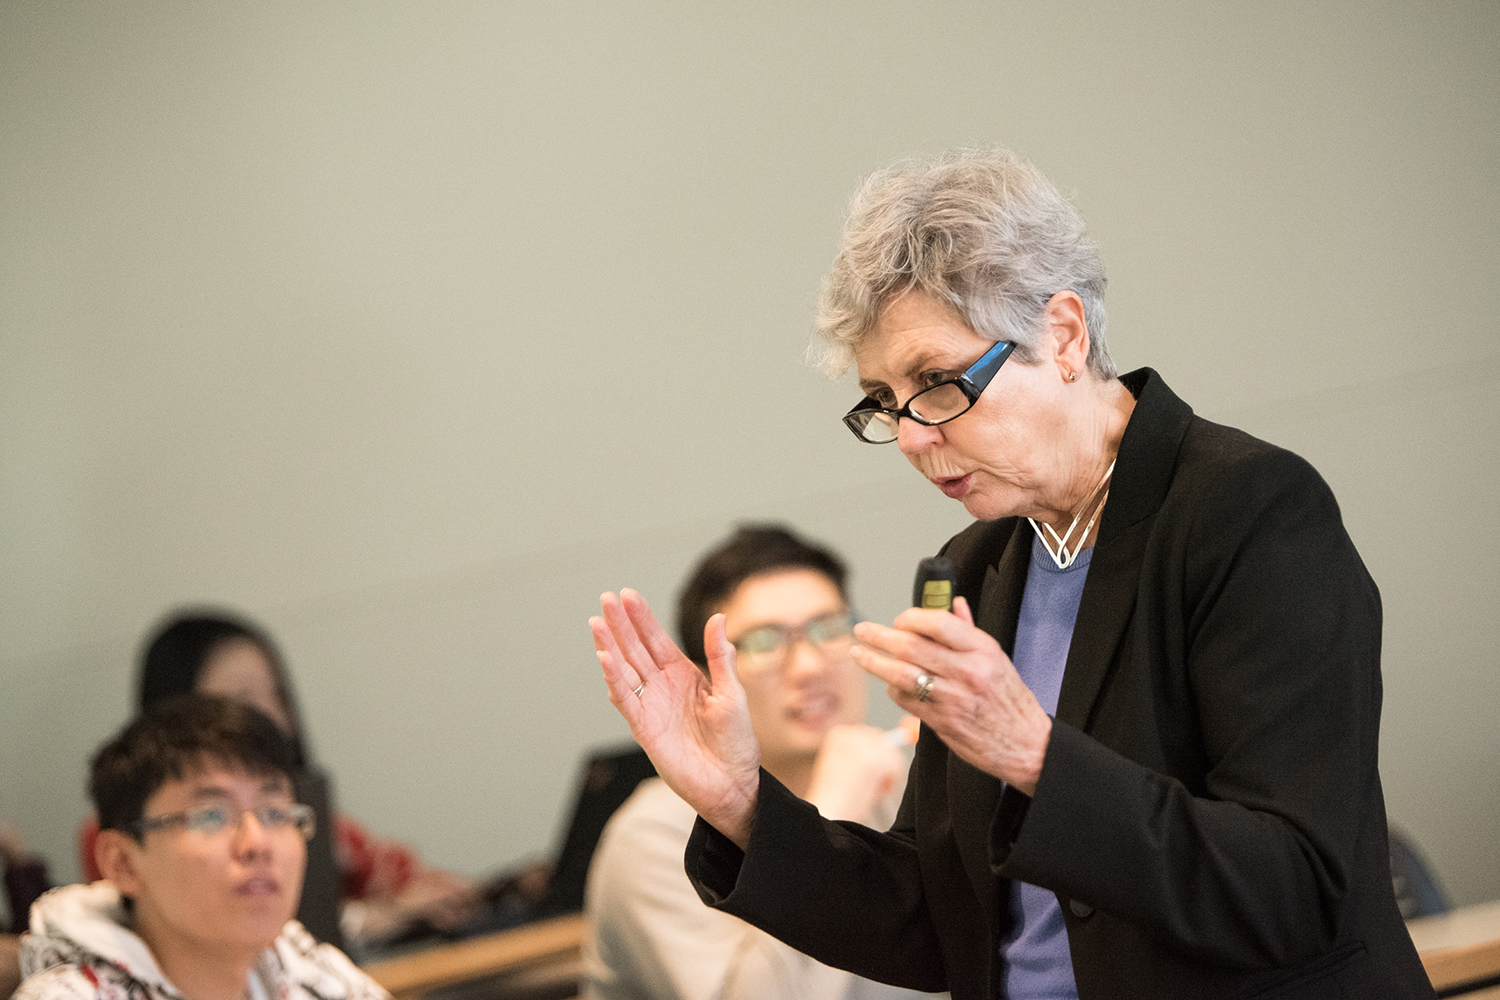 Susan Spiggle (above), professor emeritus in marketing, delivers a presentation entitled